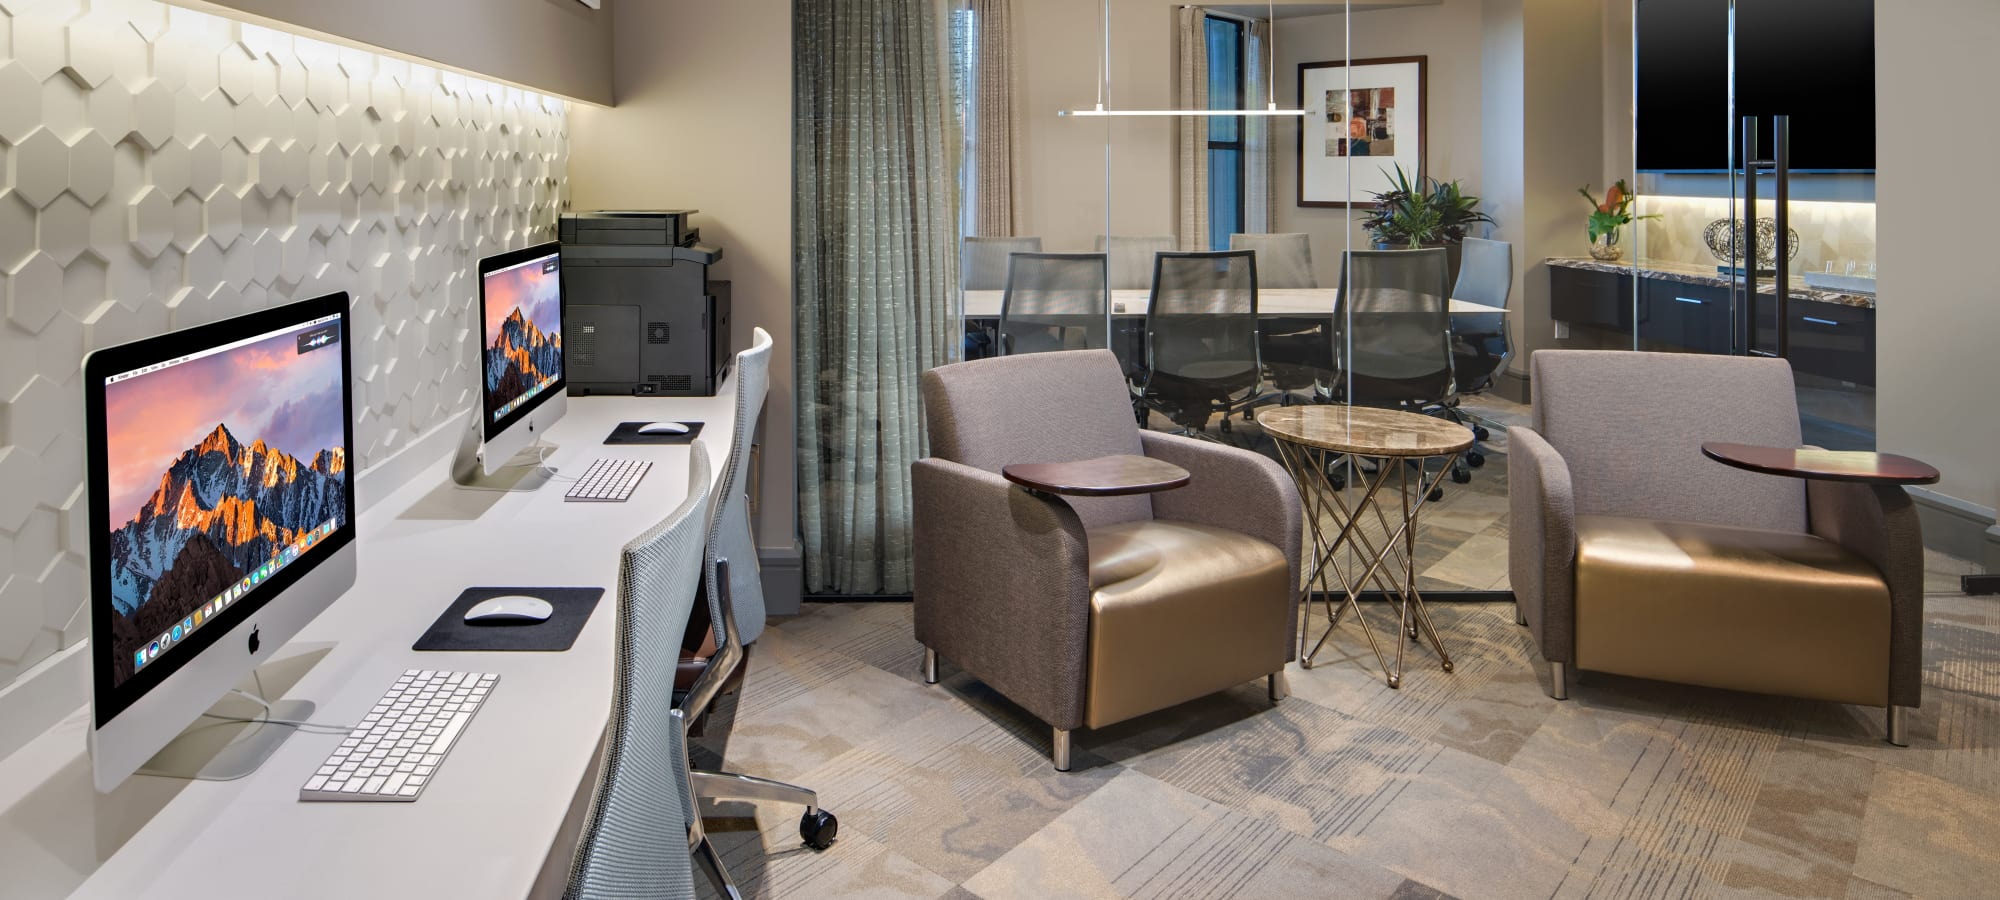 Business center with computers for resident use at The Core Scottsdale in Scottsdale, Arizona